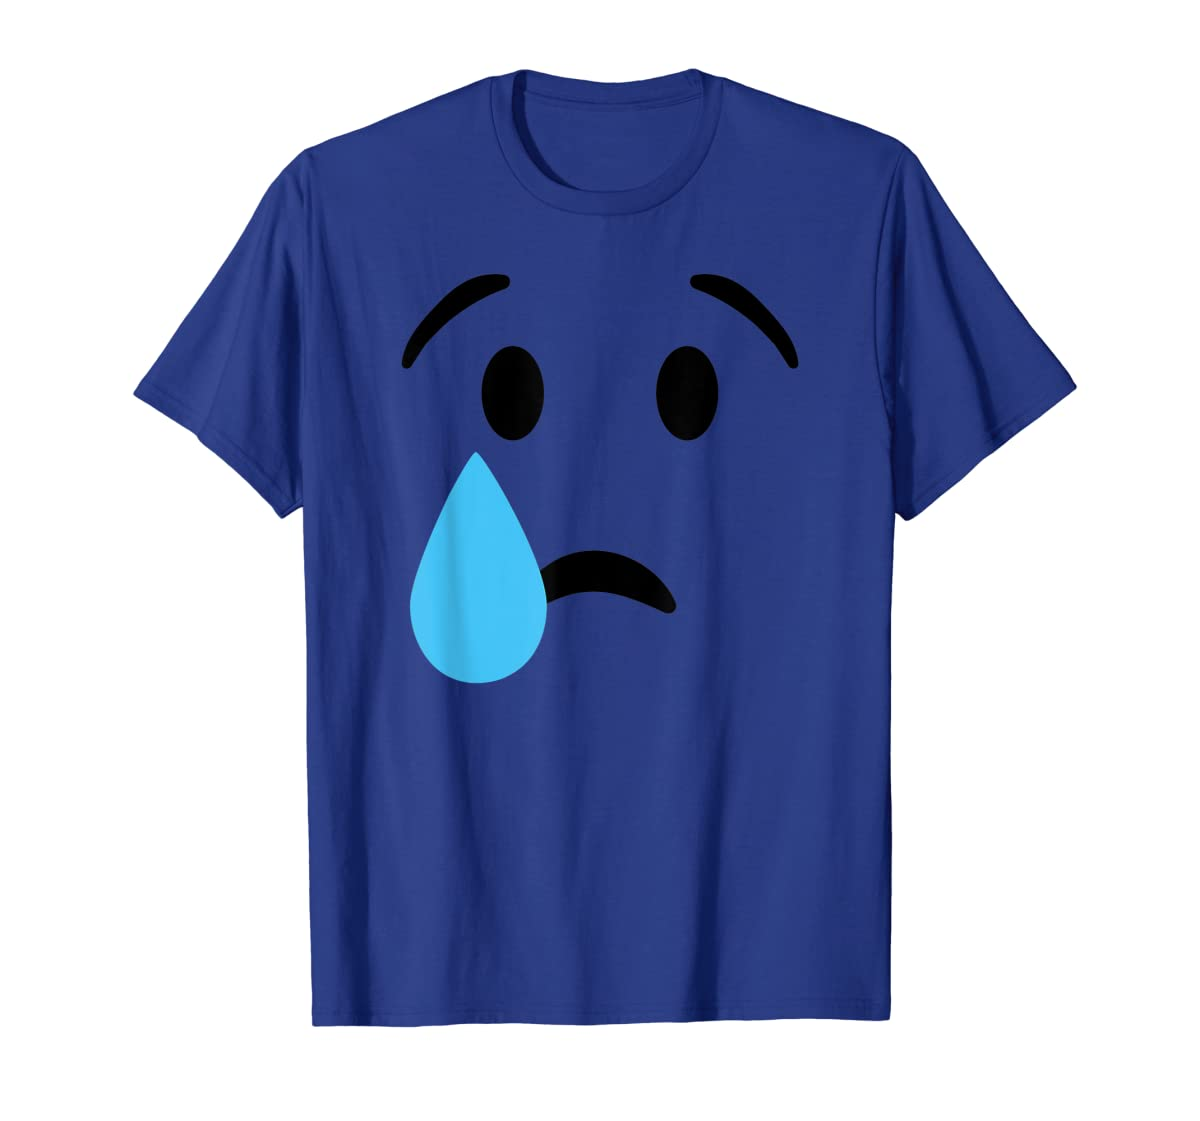 Sad Crying Tear Eyes Face Emojis Emoticon Halloween Costume T-Shirt-Men's T-Shirt-Royal